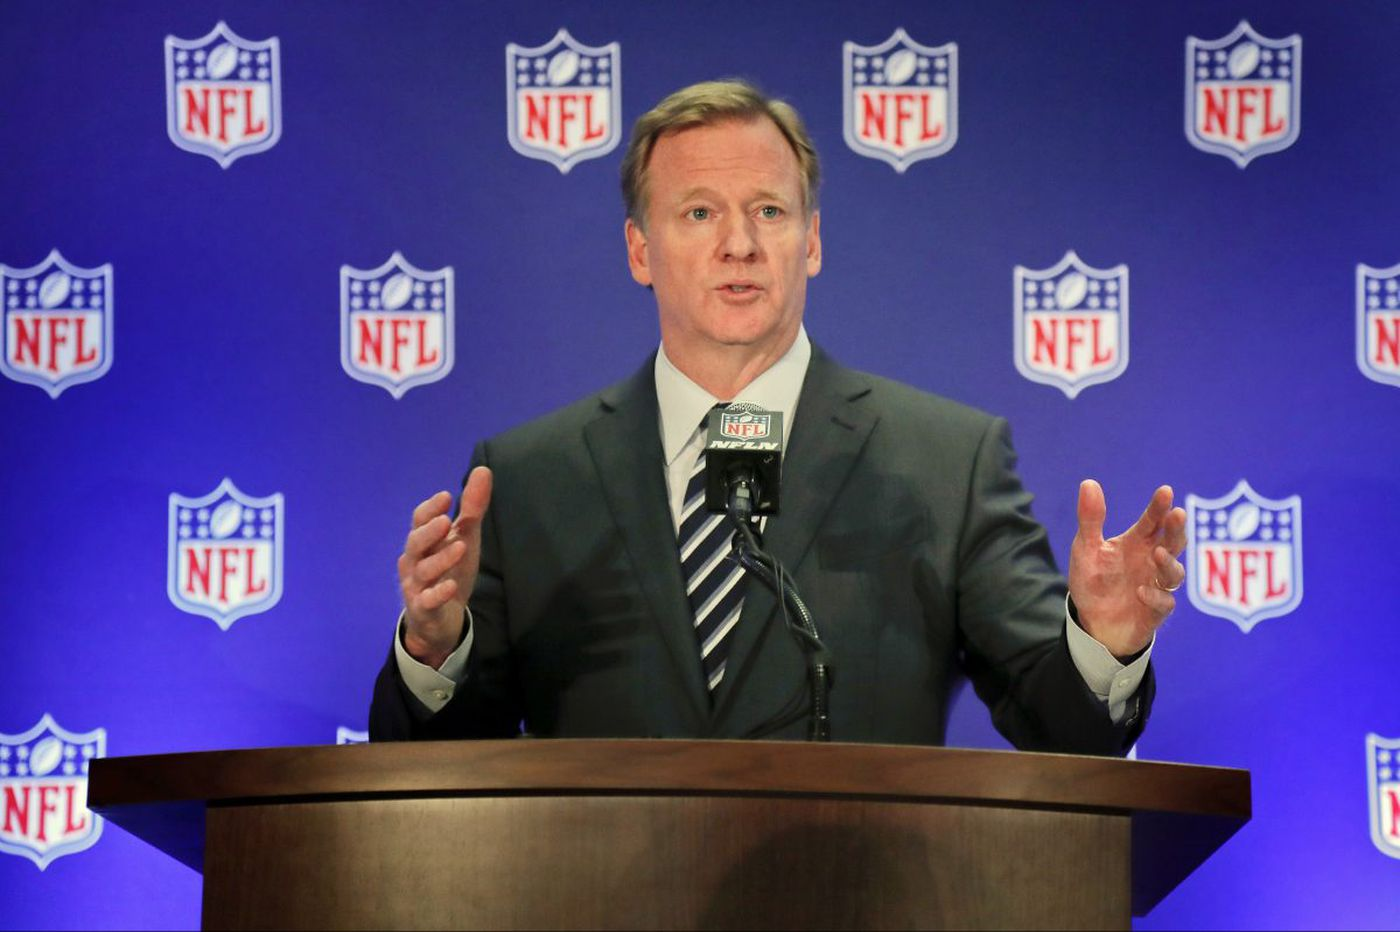 If NFL commish gets a $49.5 million salary, can fans finally have Super Bowl watch parties? | Ronnie Polaneczky